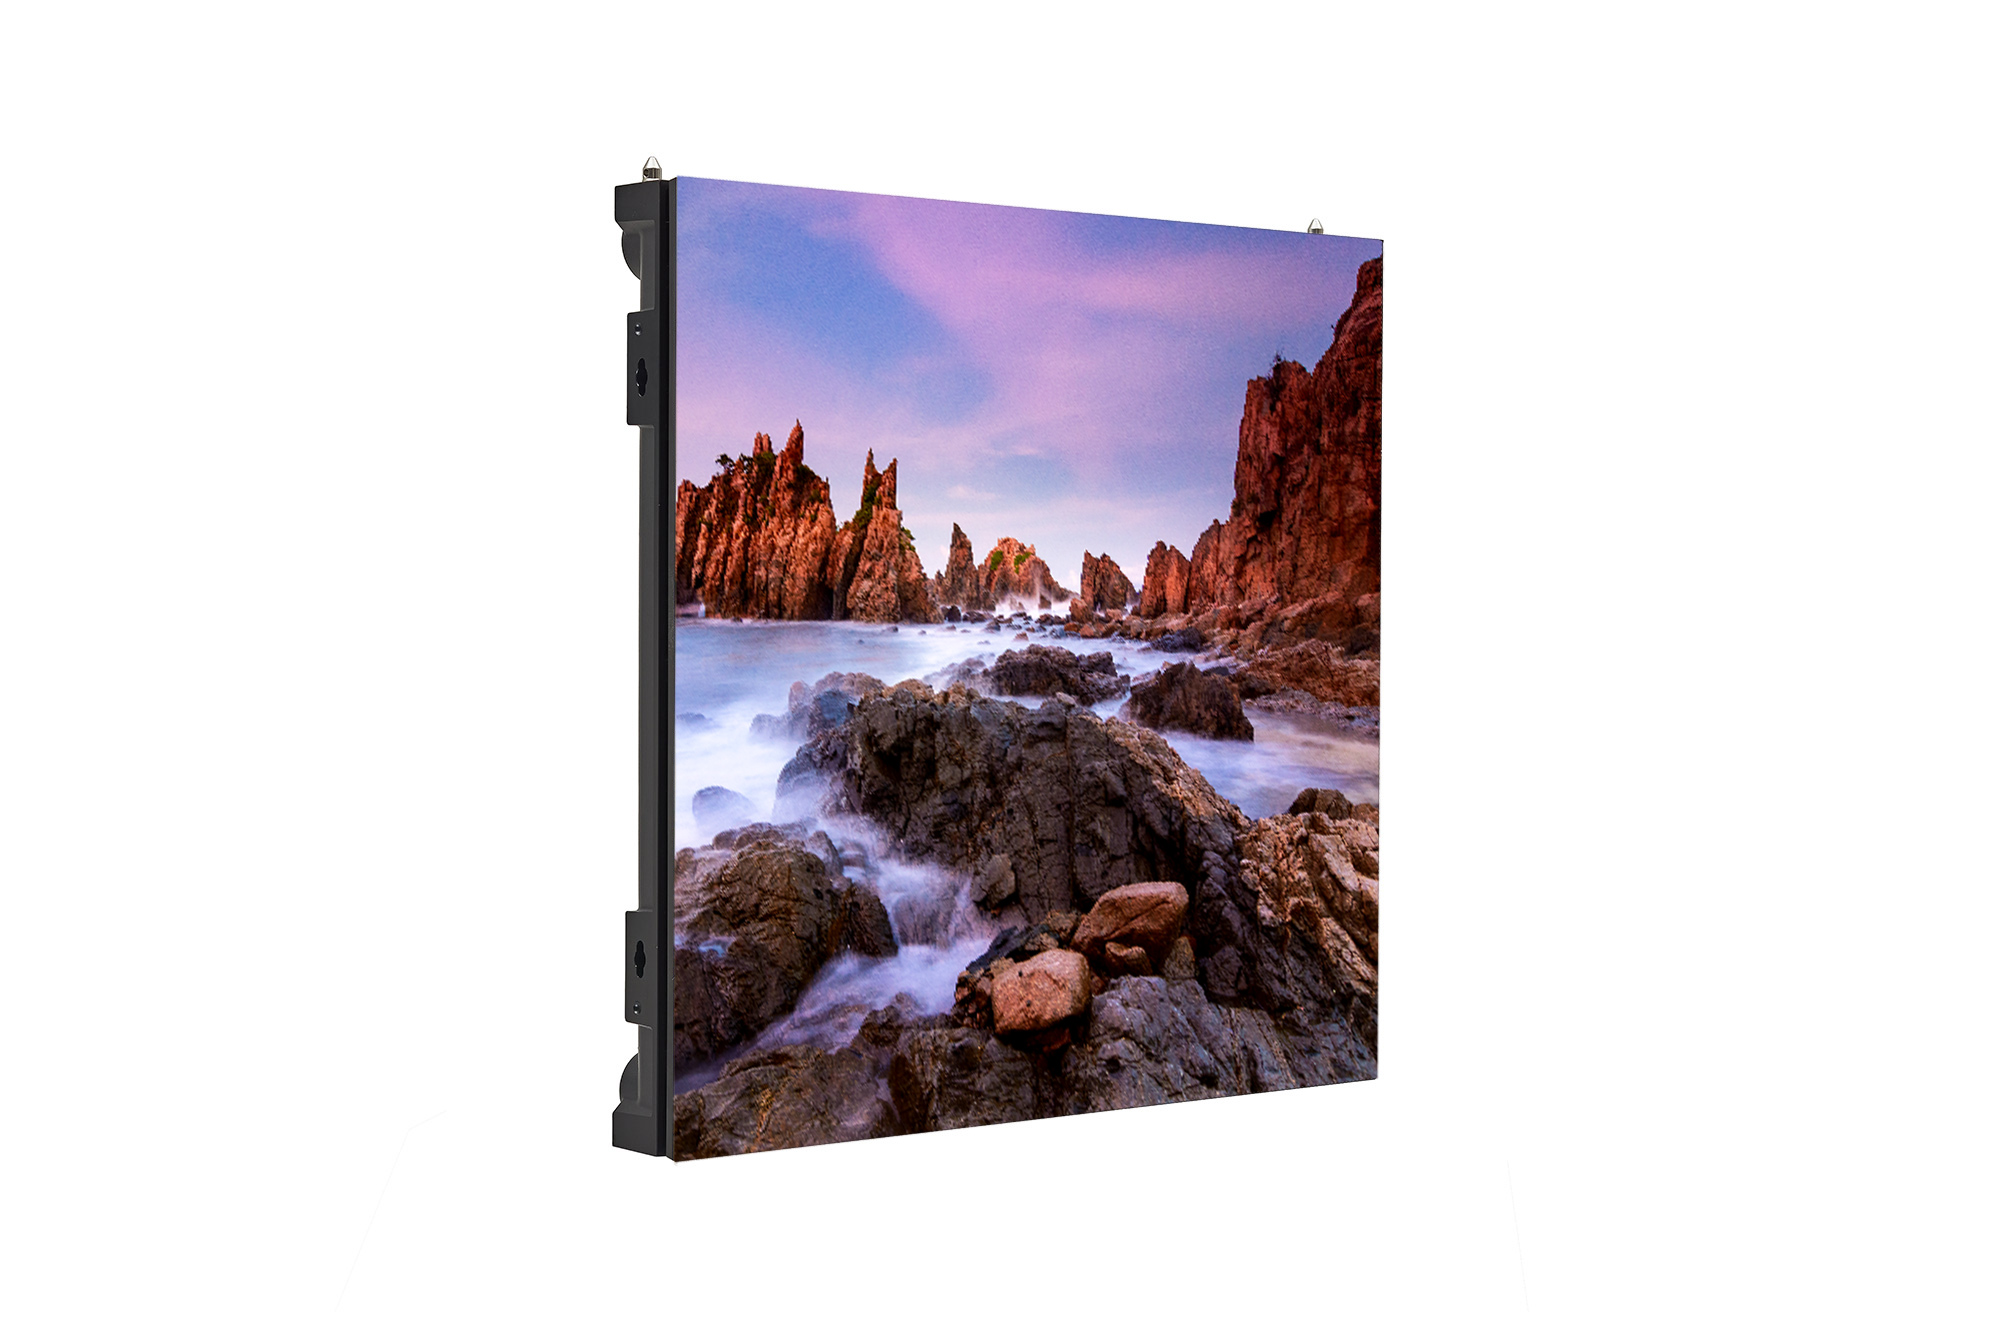 Digital Signage LSCA, right 45 degree side view with inscreen, 500x500